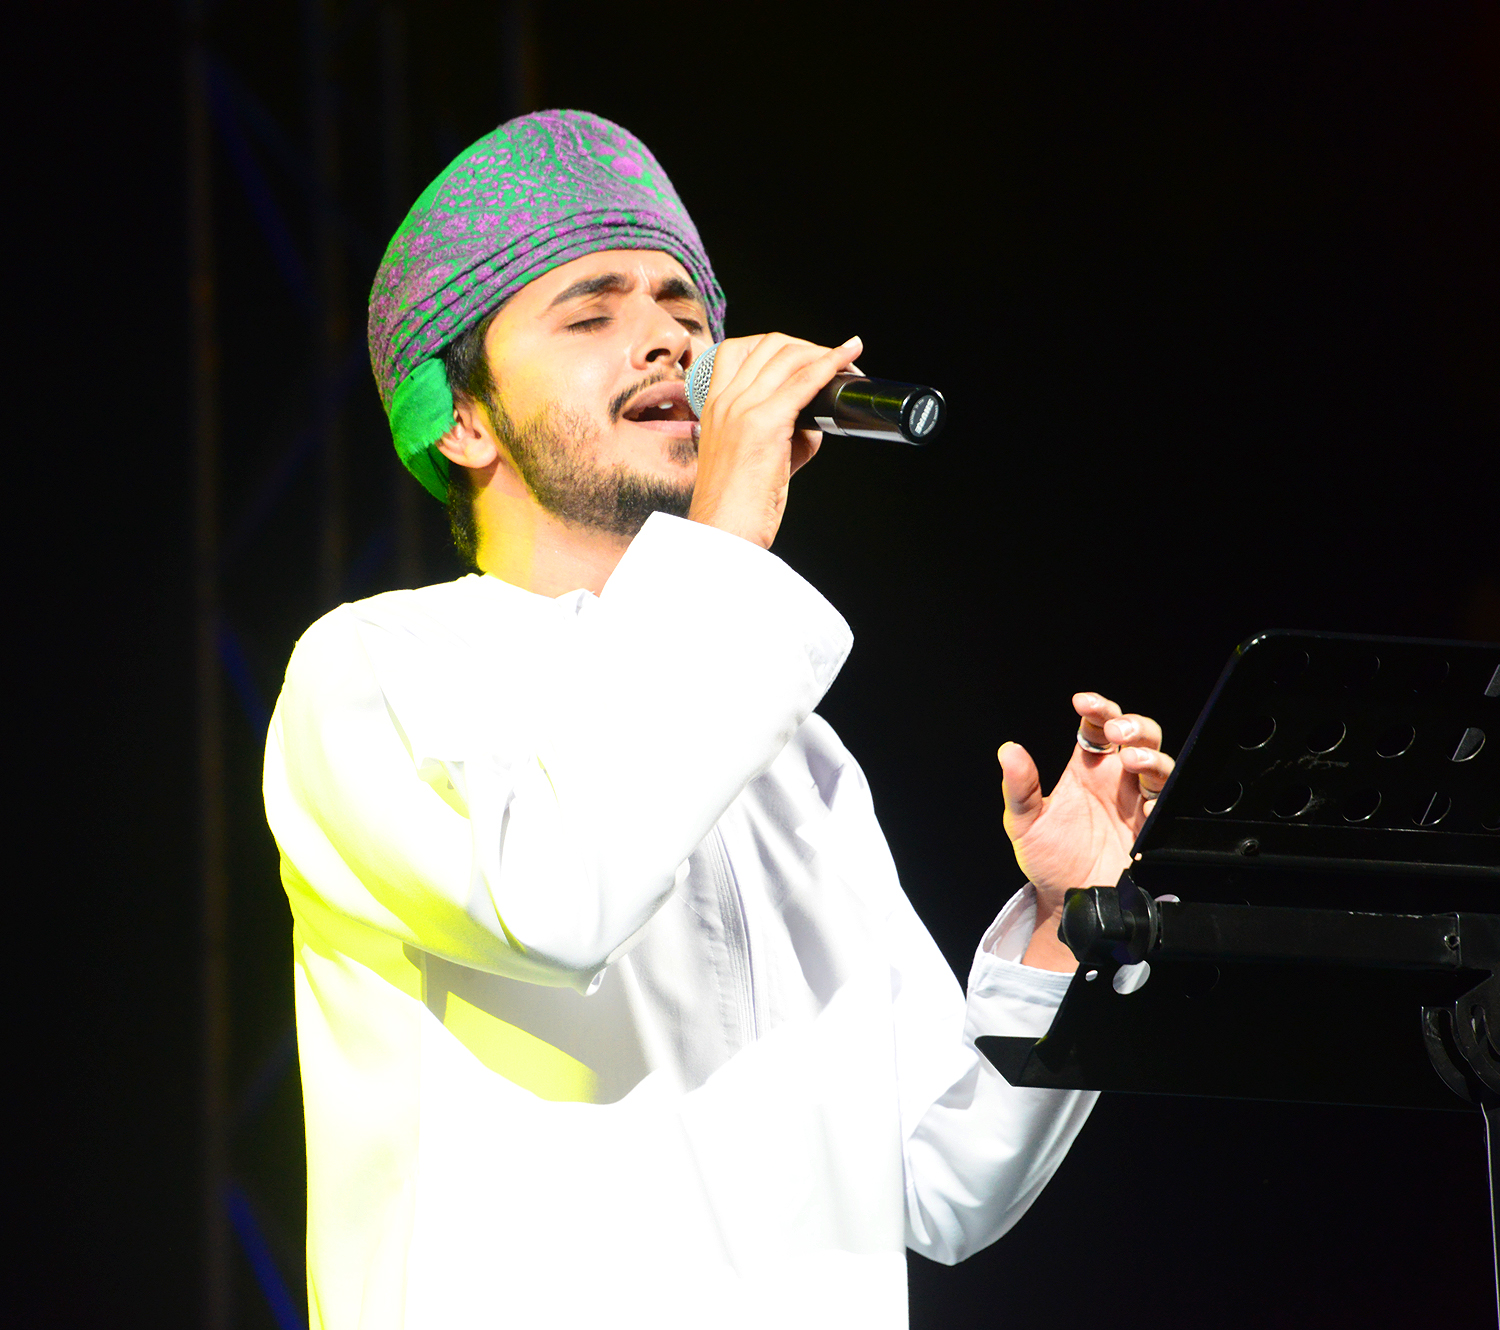 Singer Haitham Rafi takes audience by storm at Muscat Festival